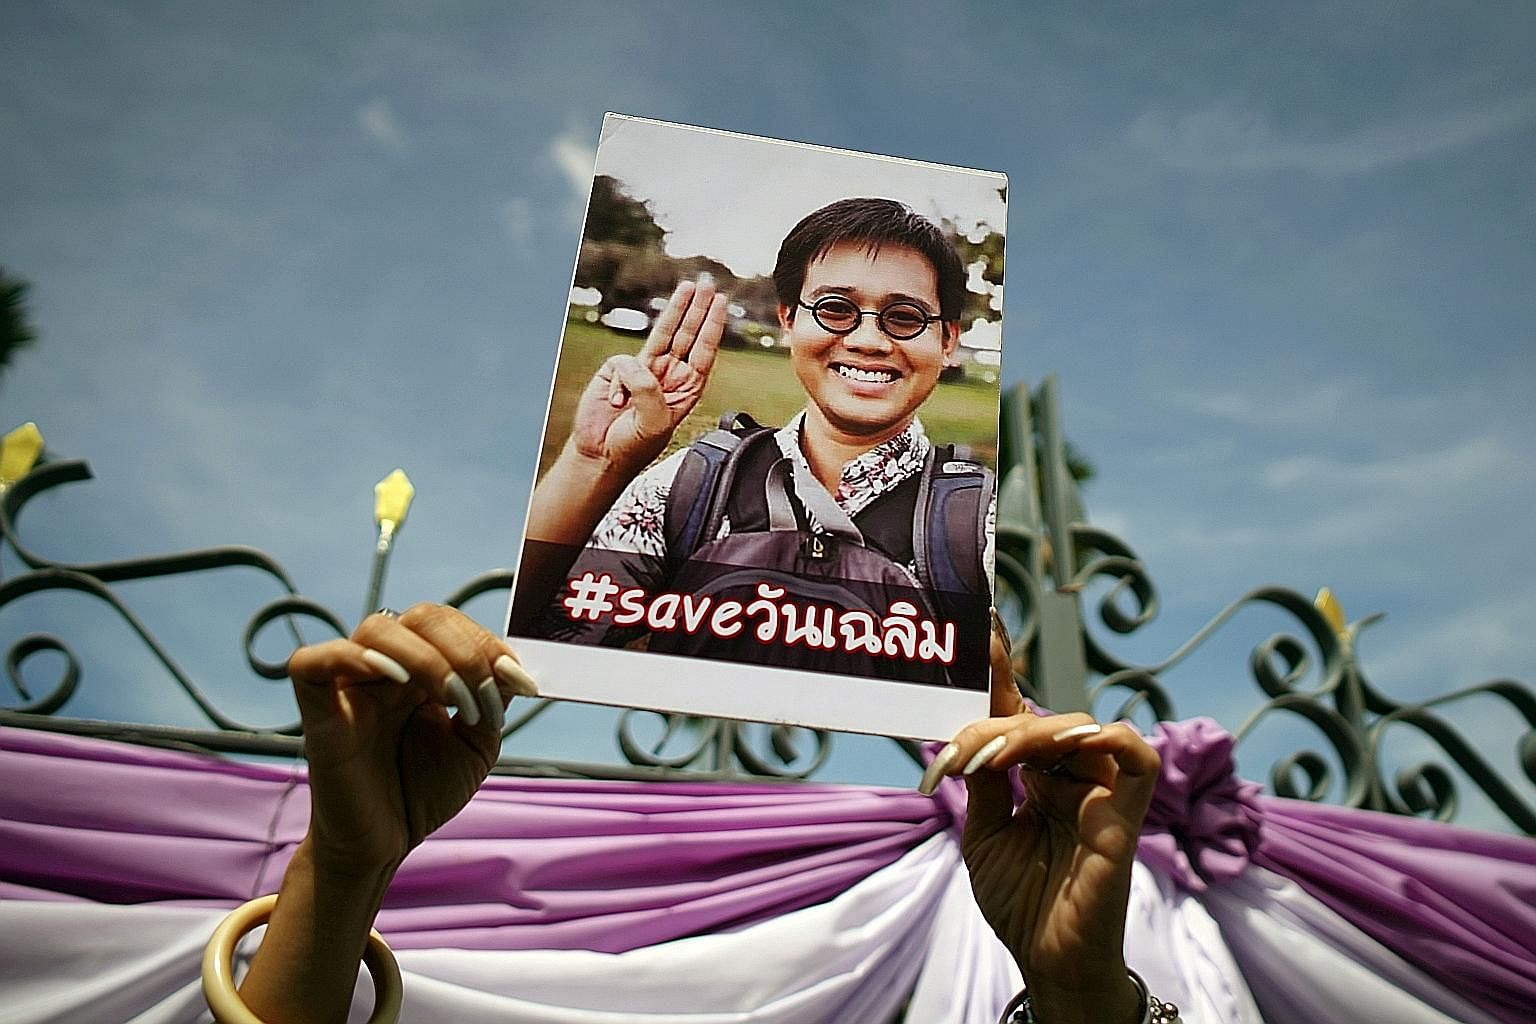 A poster of missing Thai activist Wanchalearm Satsaksit being held up during a protest outside Prime Minister Prayut Chan-o-cha's offices in Bangkok yesterday. Wanchalearm fled from Thailand following a 2014 military coup and is suspected to have bee